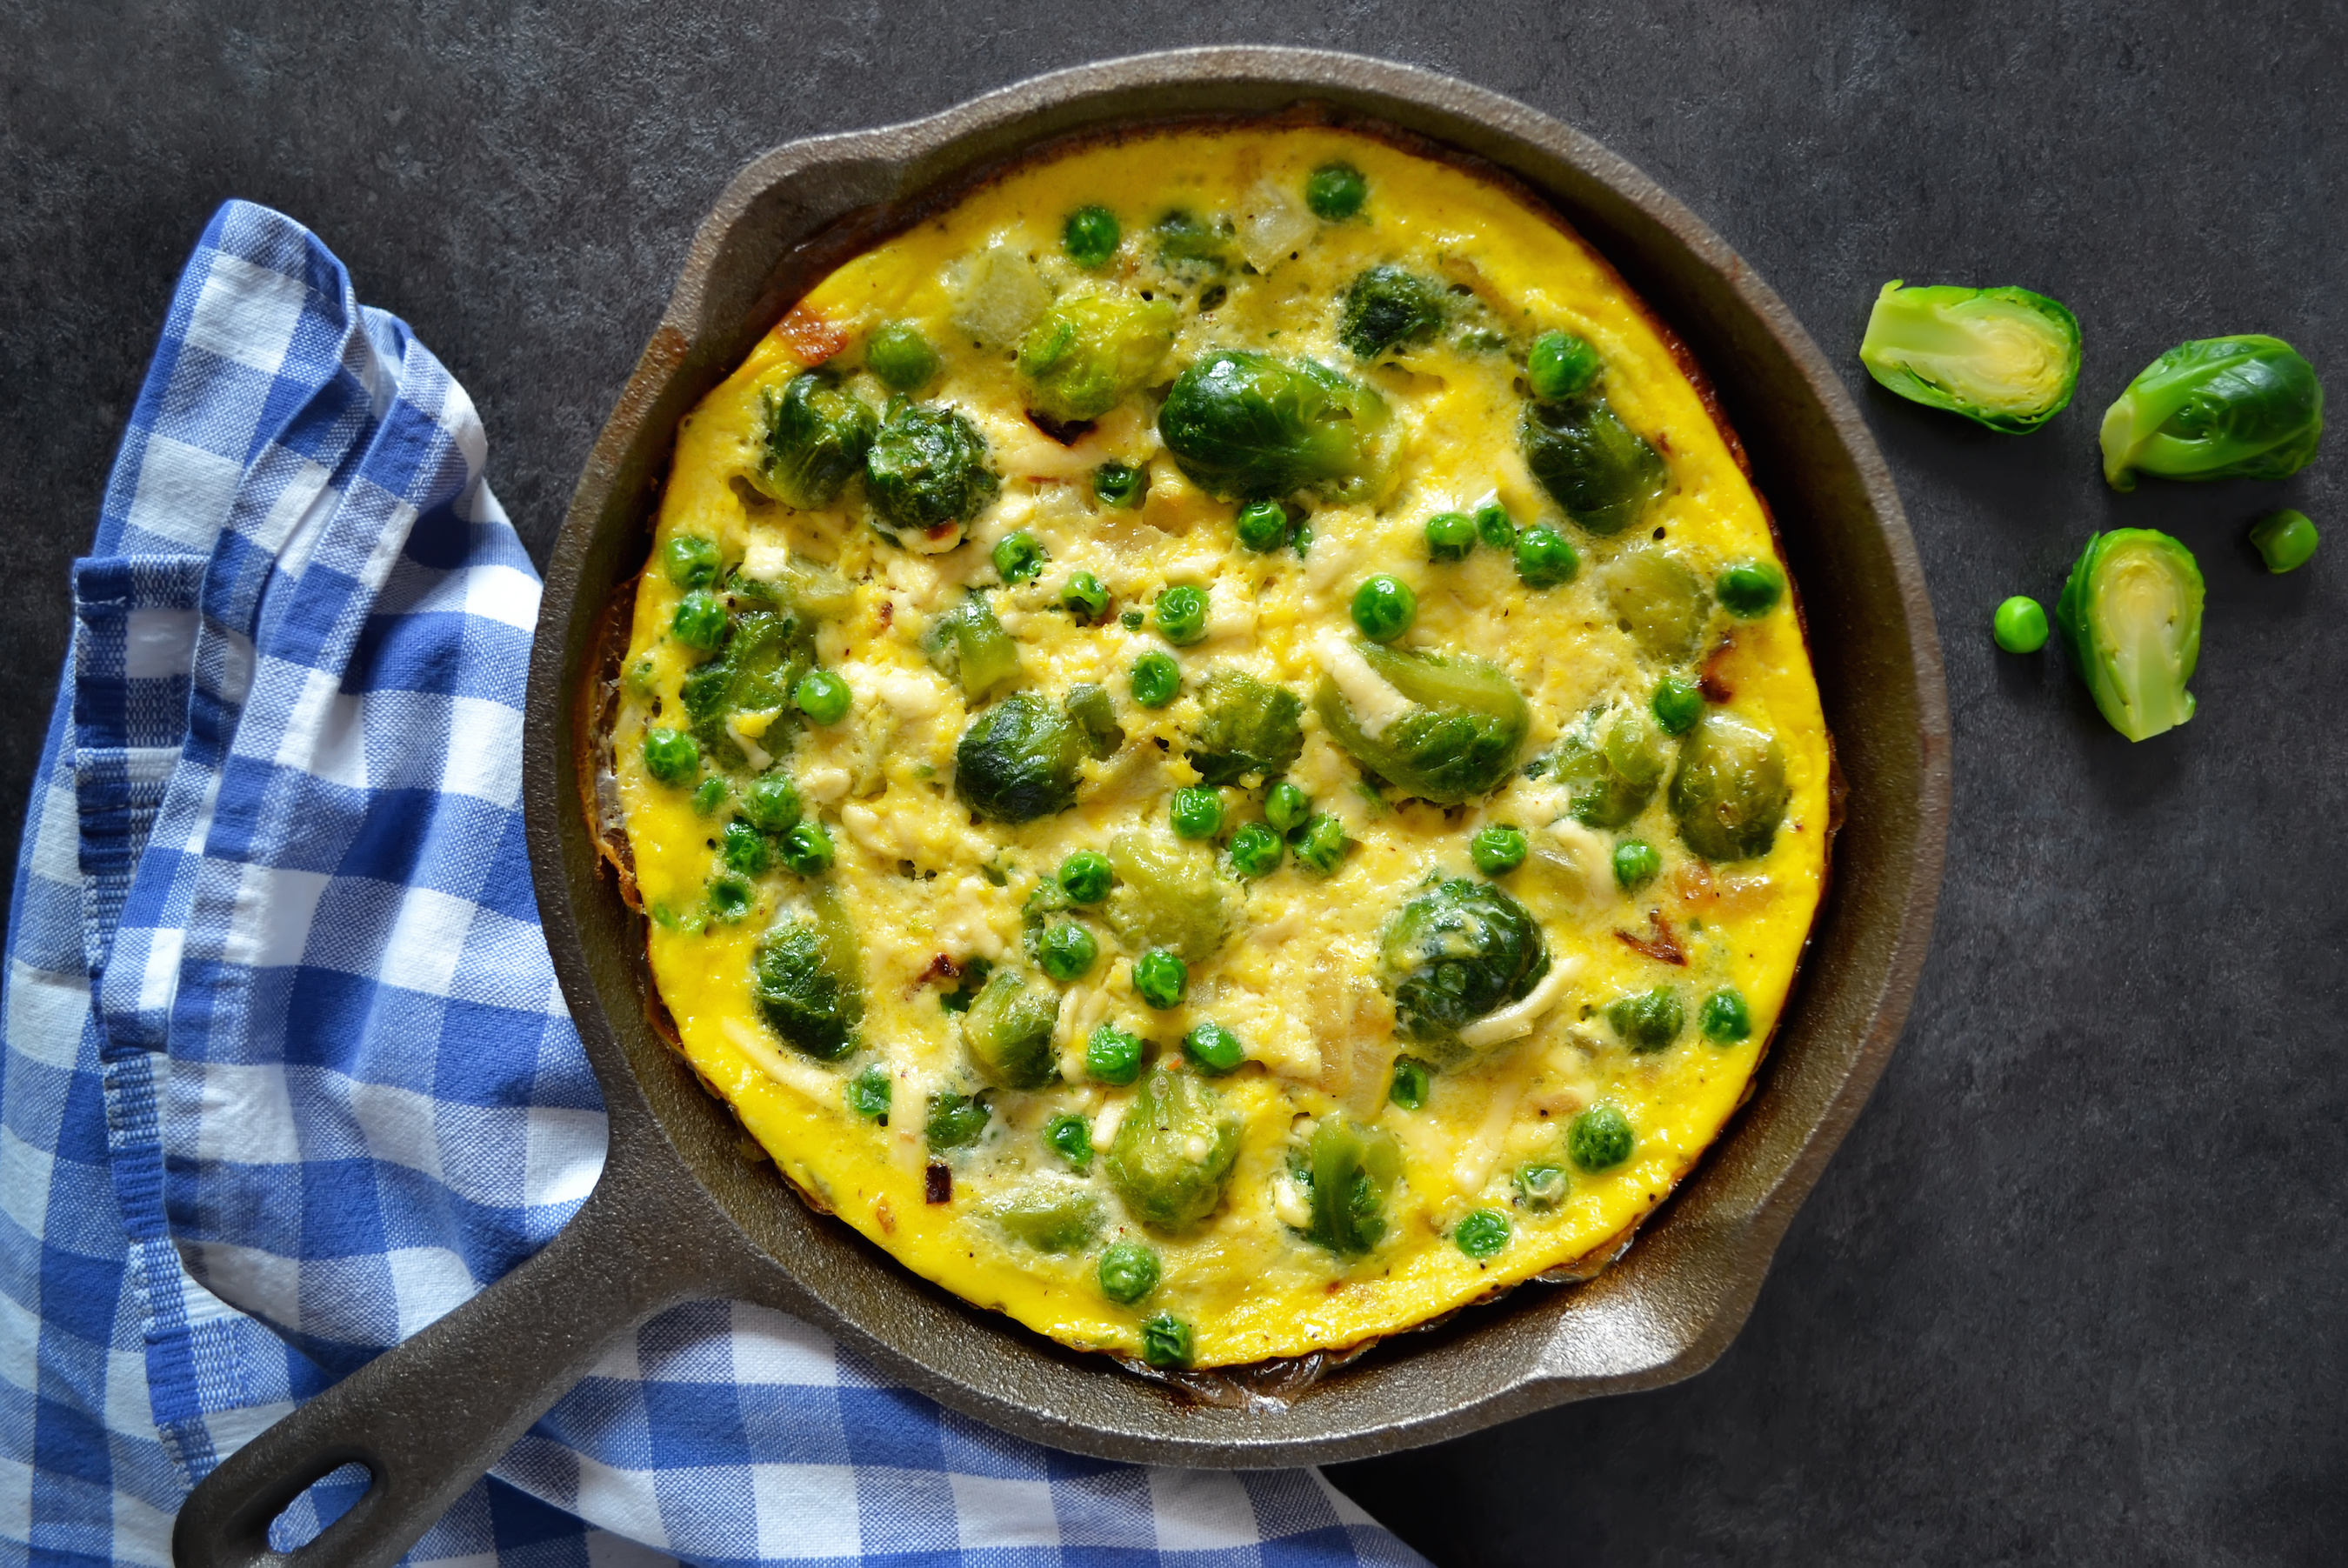 Leftover Brussels Sprout and Pea Frittata